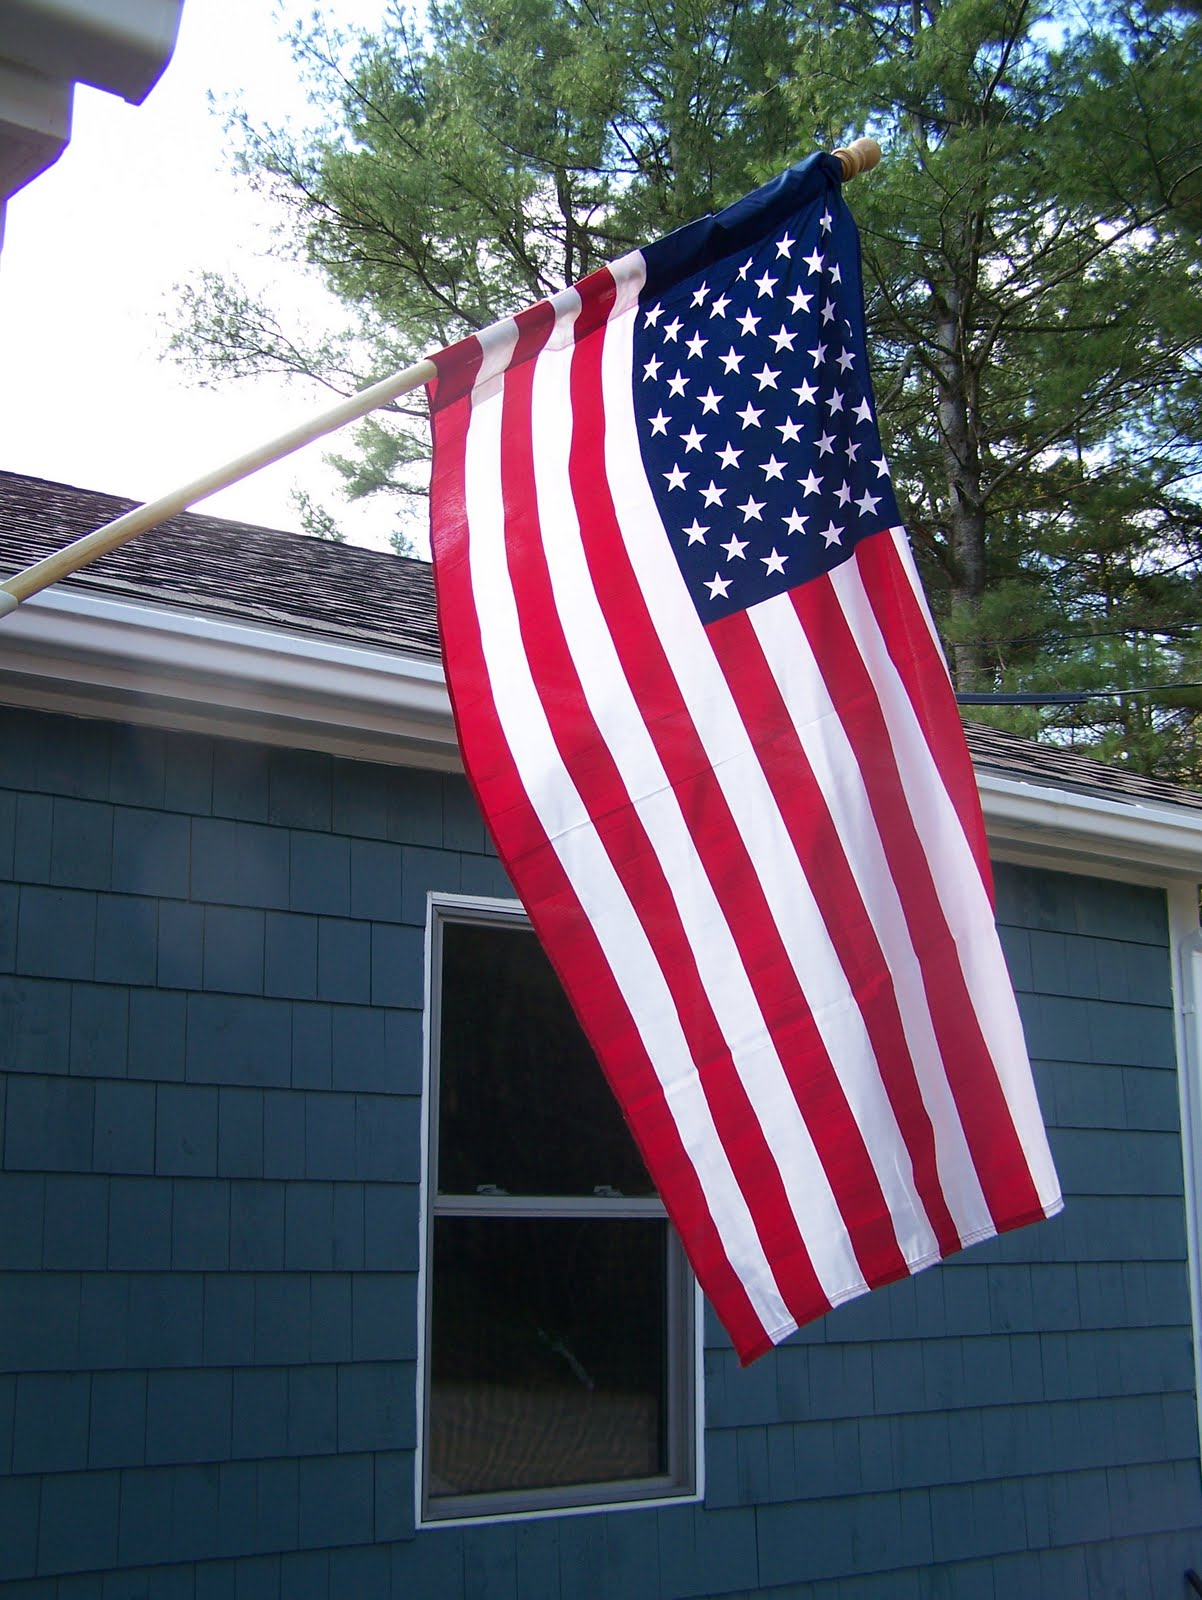 My American flag on my porch